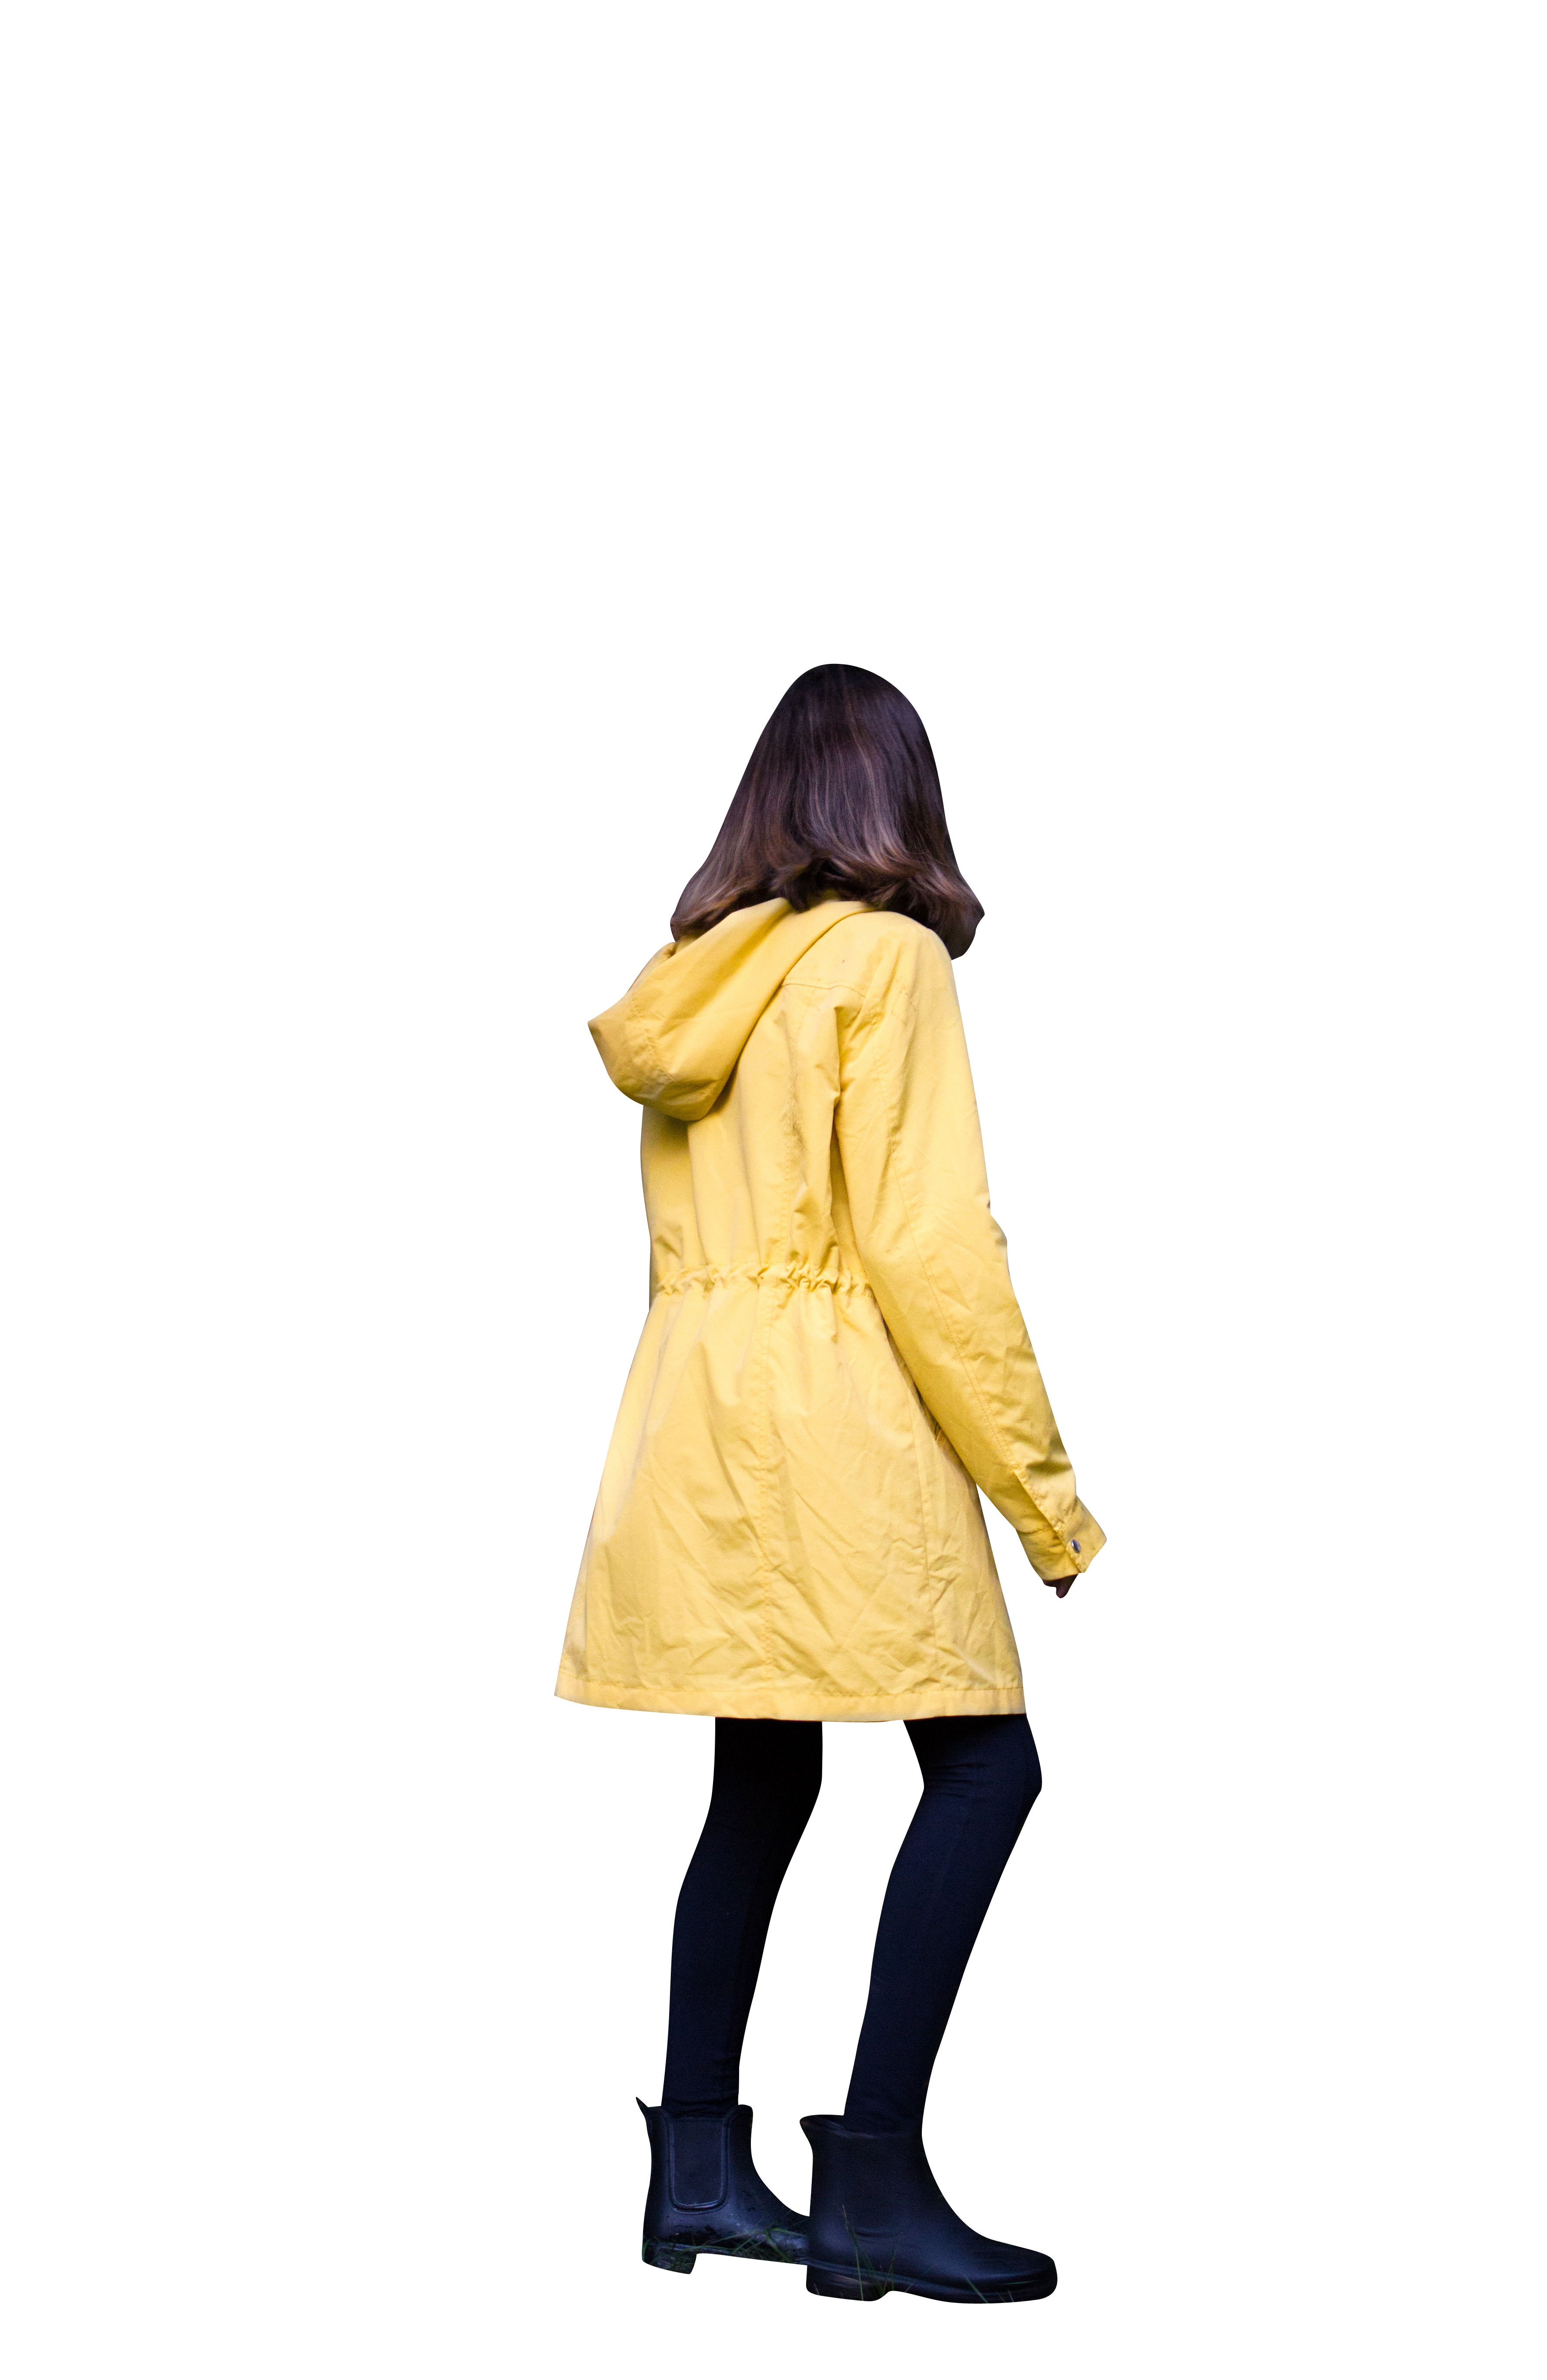 Woman with yellow hood jacket Transparent Background PNG